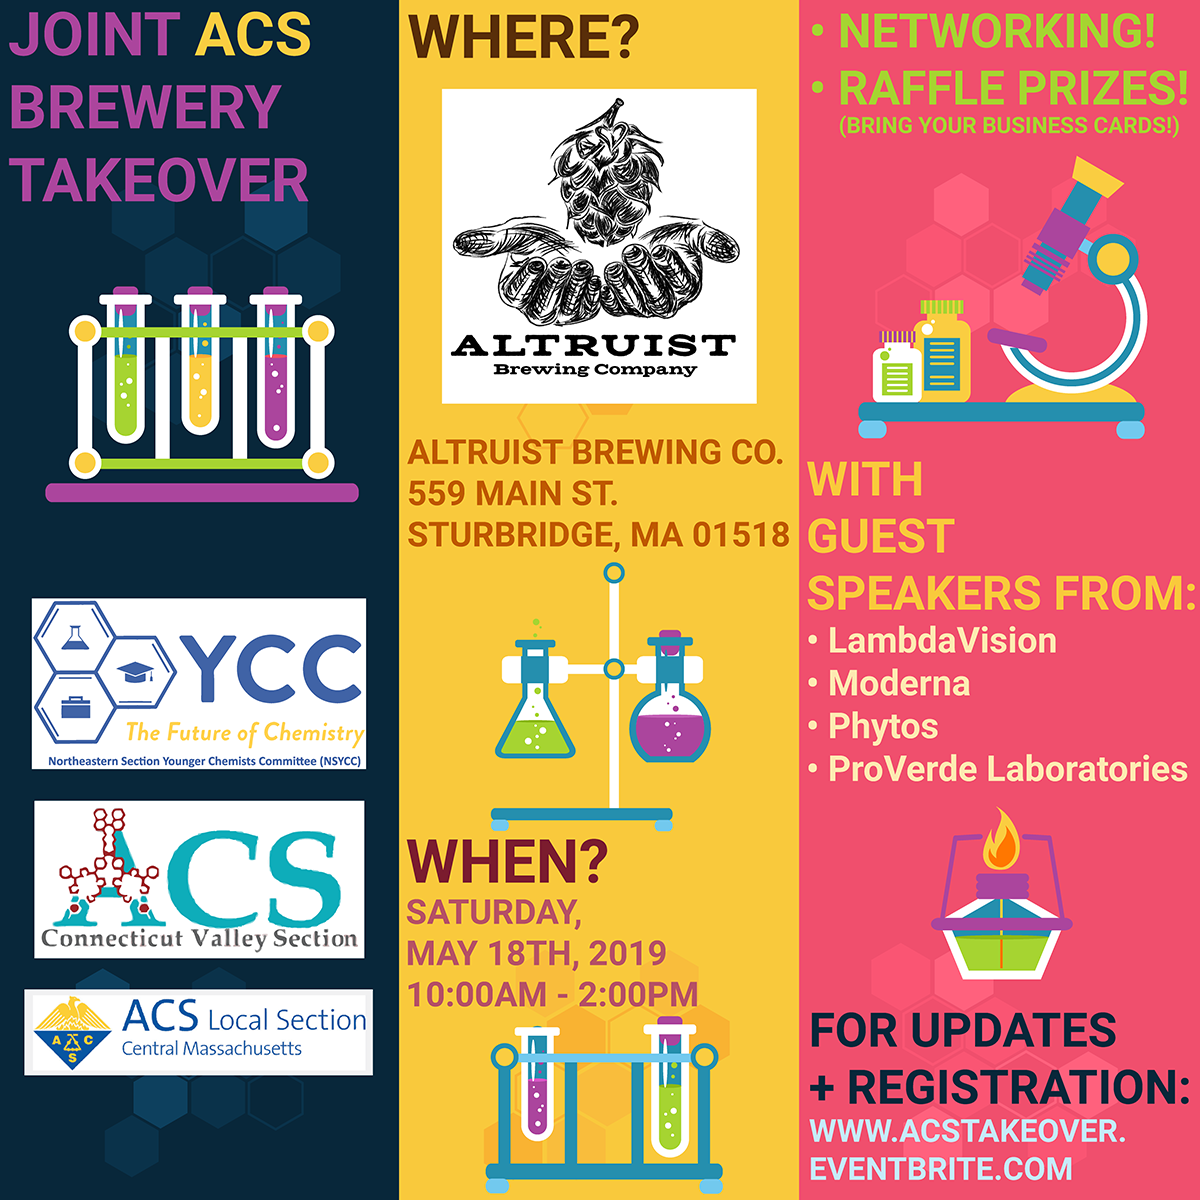 Joint mixer flier - Massachusetts and Connecticut Local Sections of the American Chemical Society